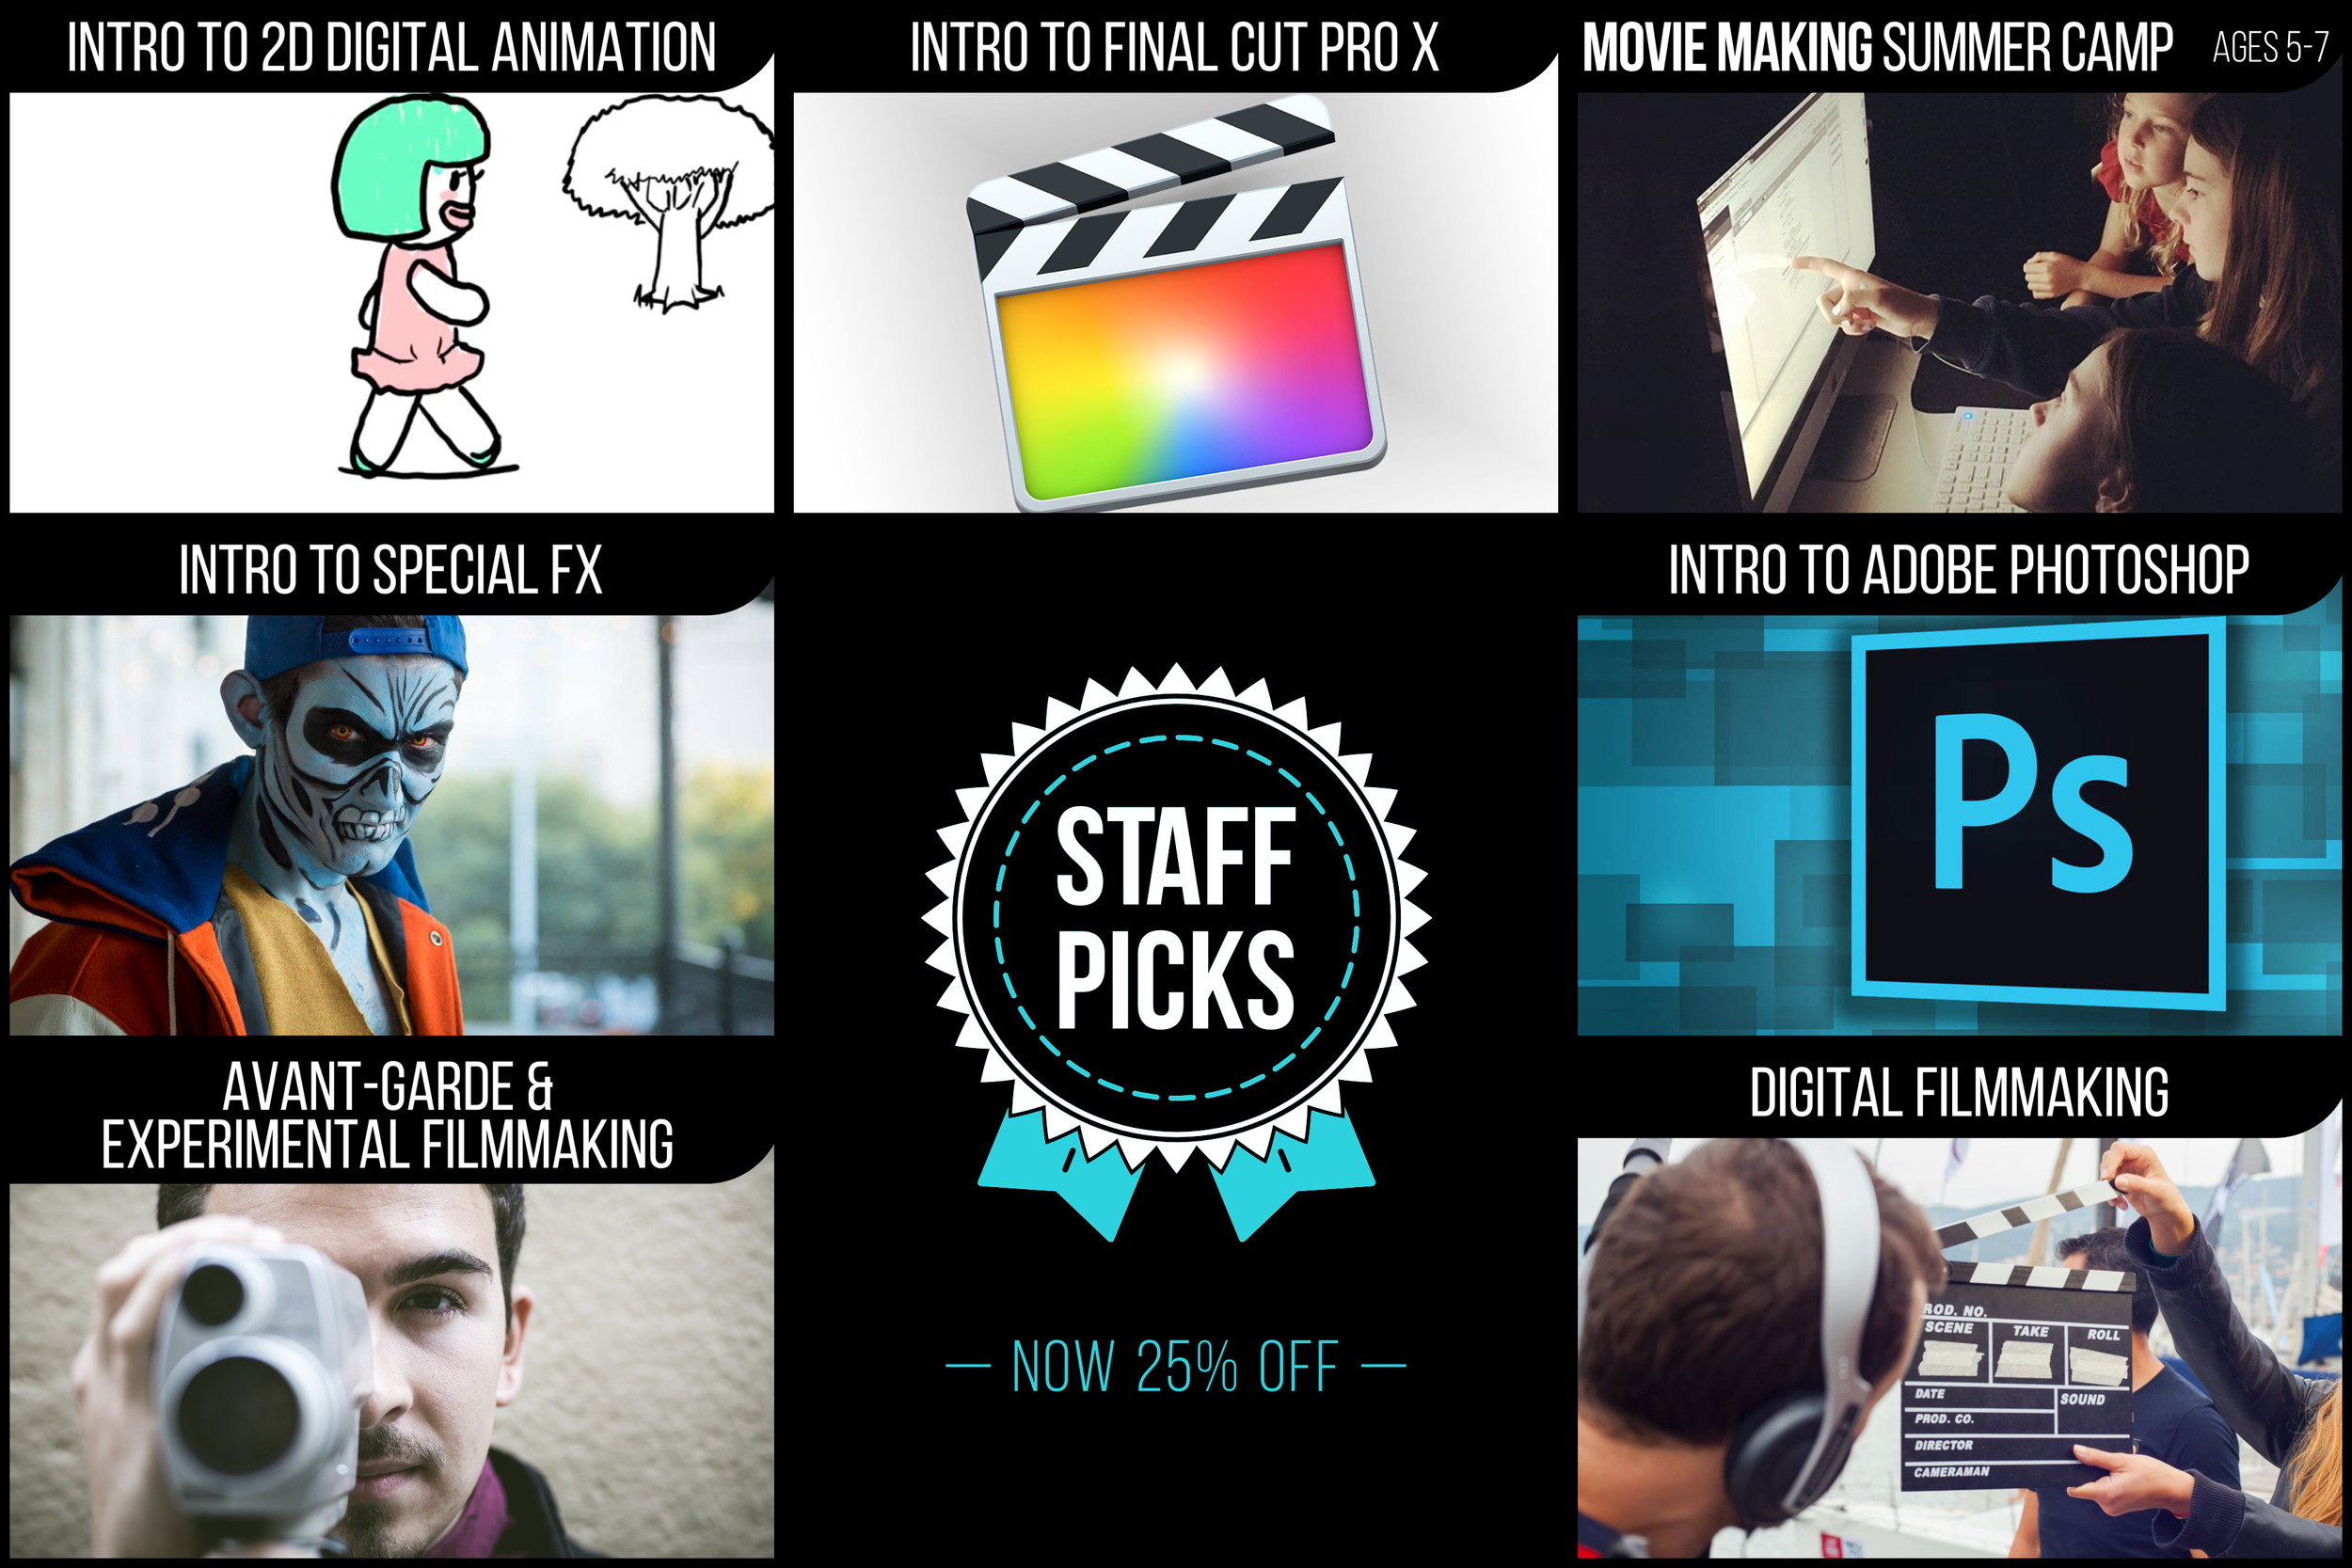 STAFF PICKS: NOW 25% OFF